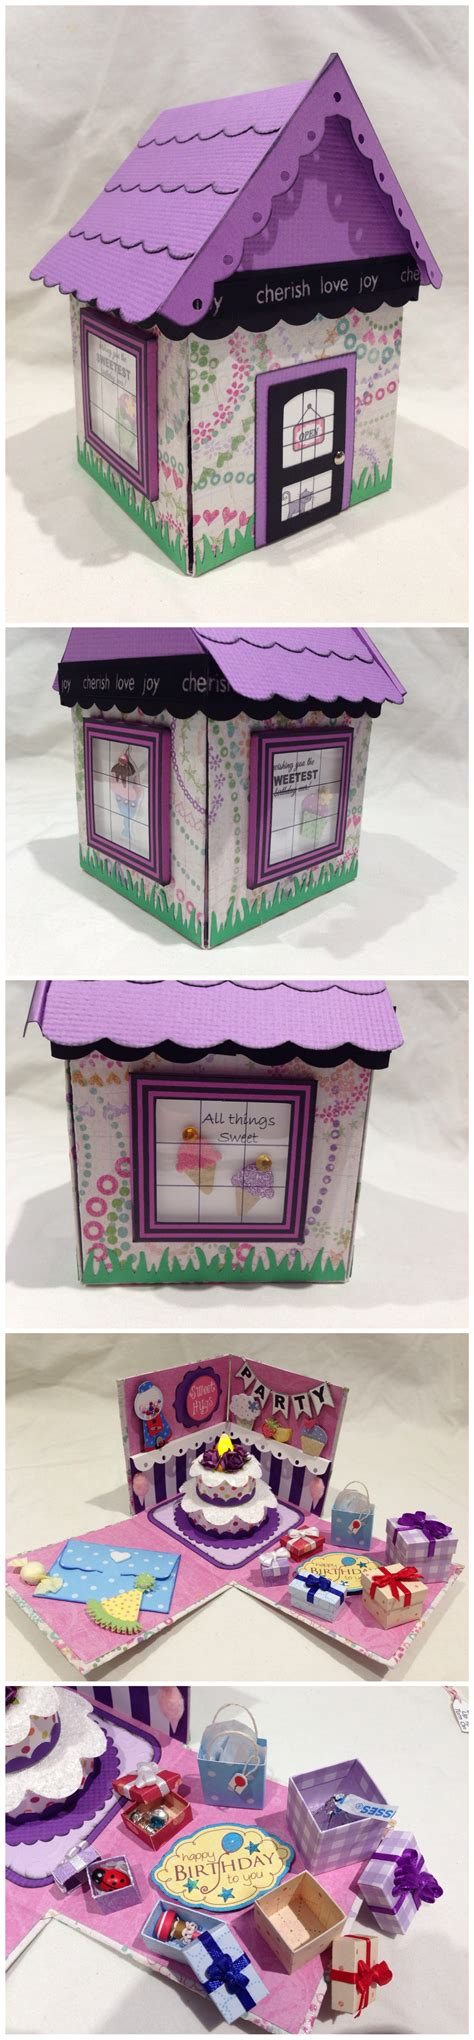 explosion box cake tutorial sweet shop birthday party explosion box with tea light